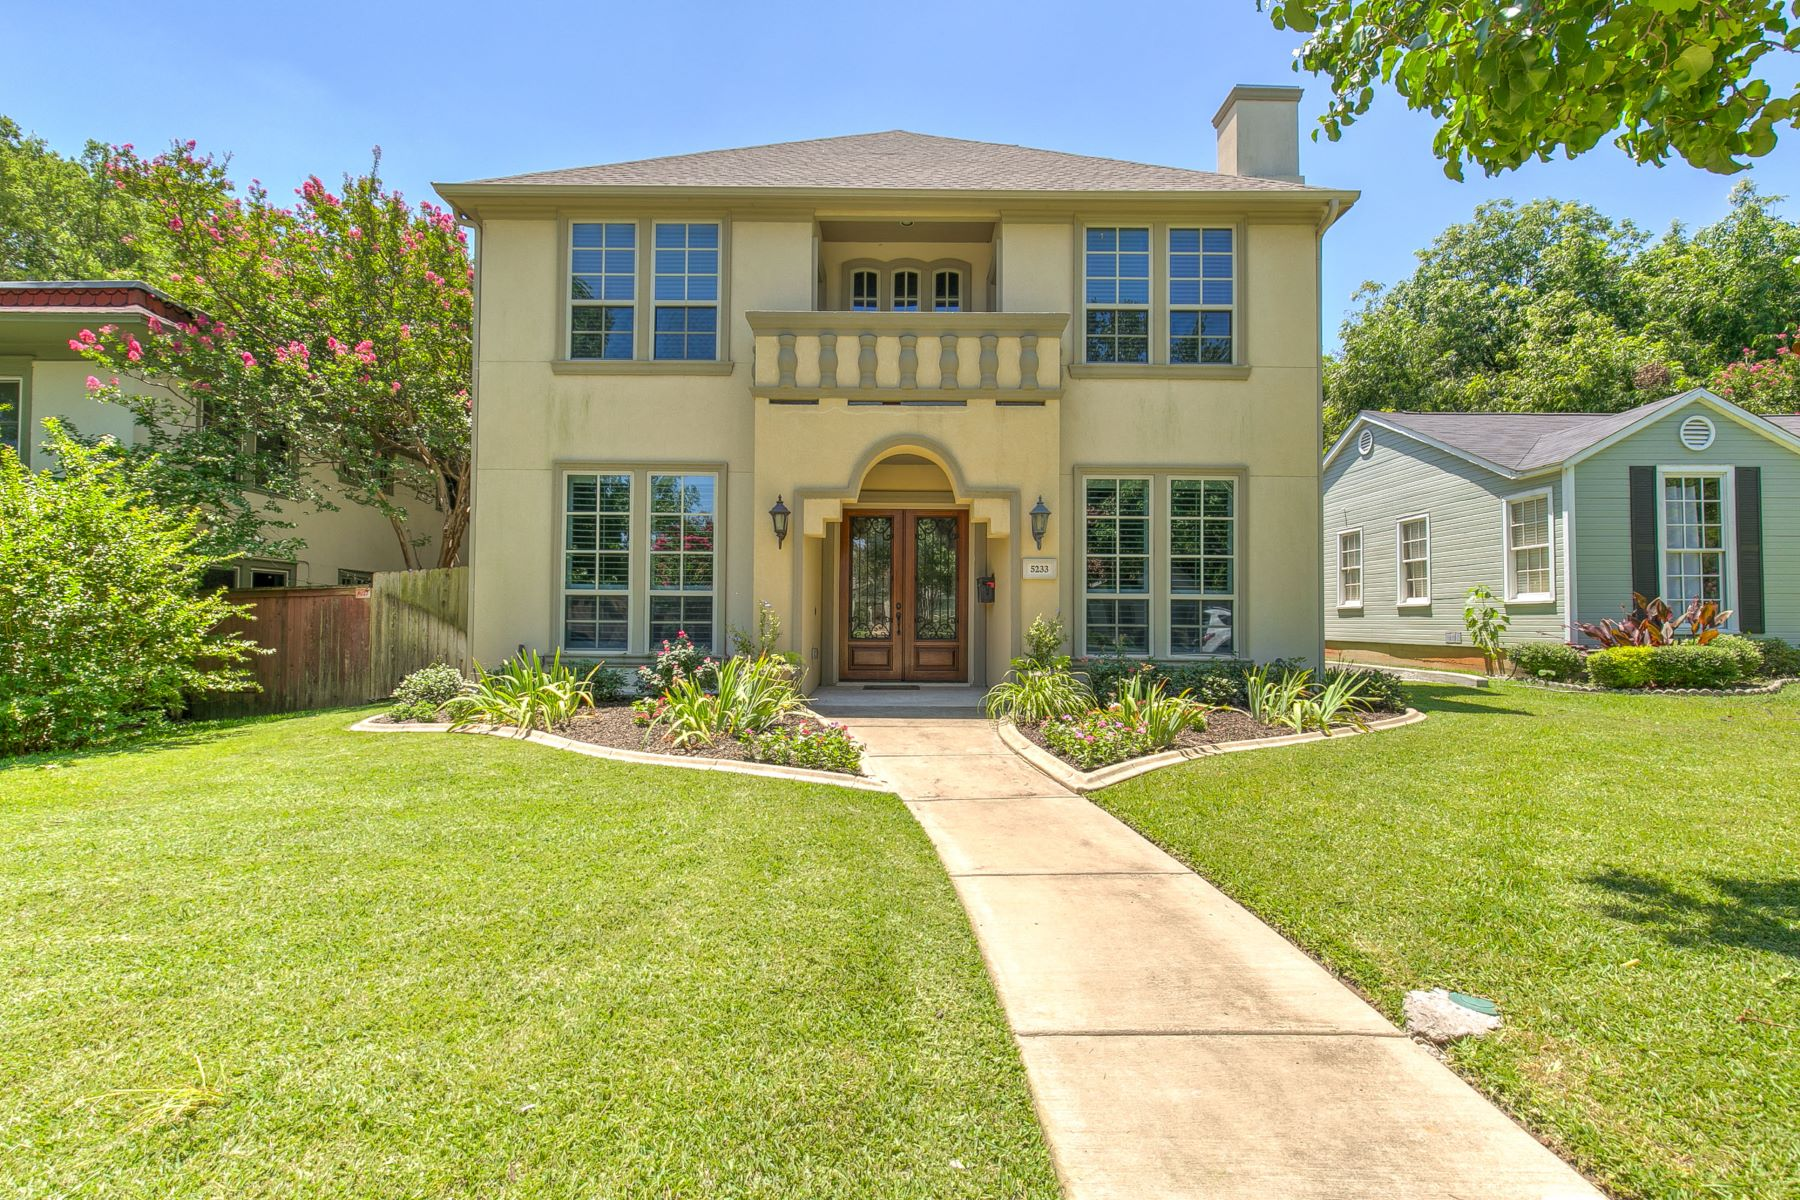 Single Family Homes for Active at Arlington Heights Traditional 5233 El Campo Avenue Fort Worth, Texas 76107 United States